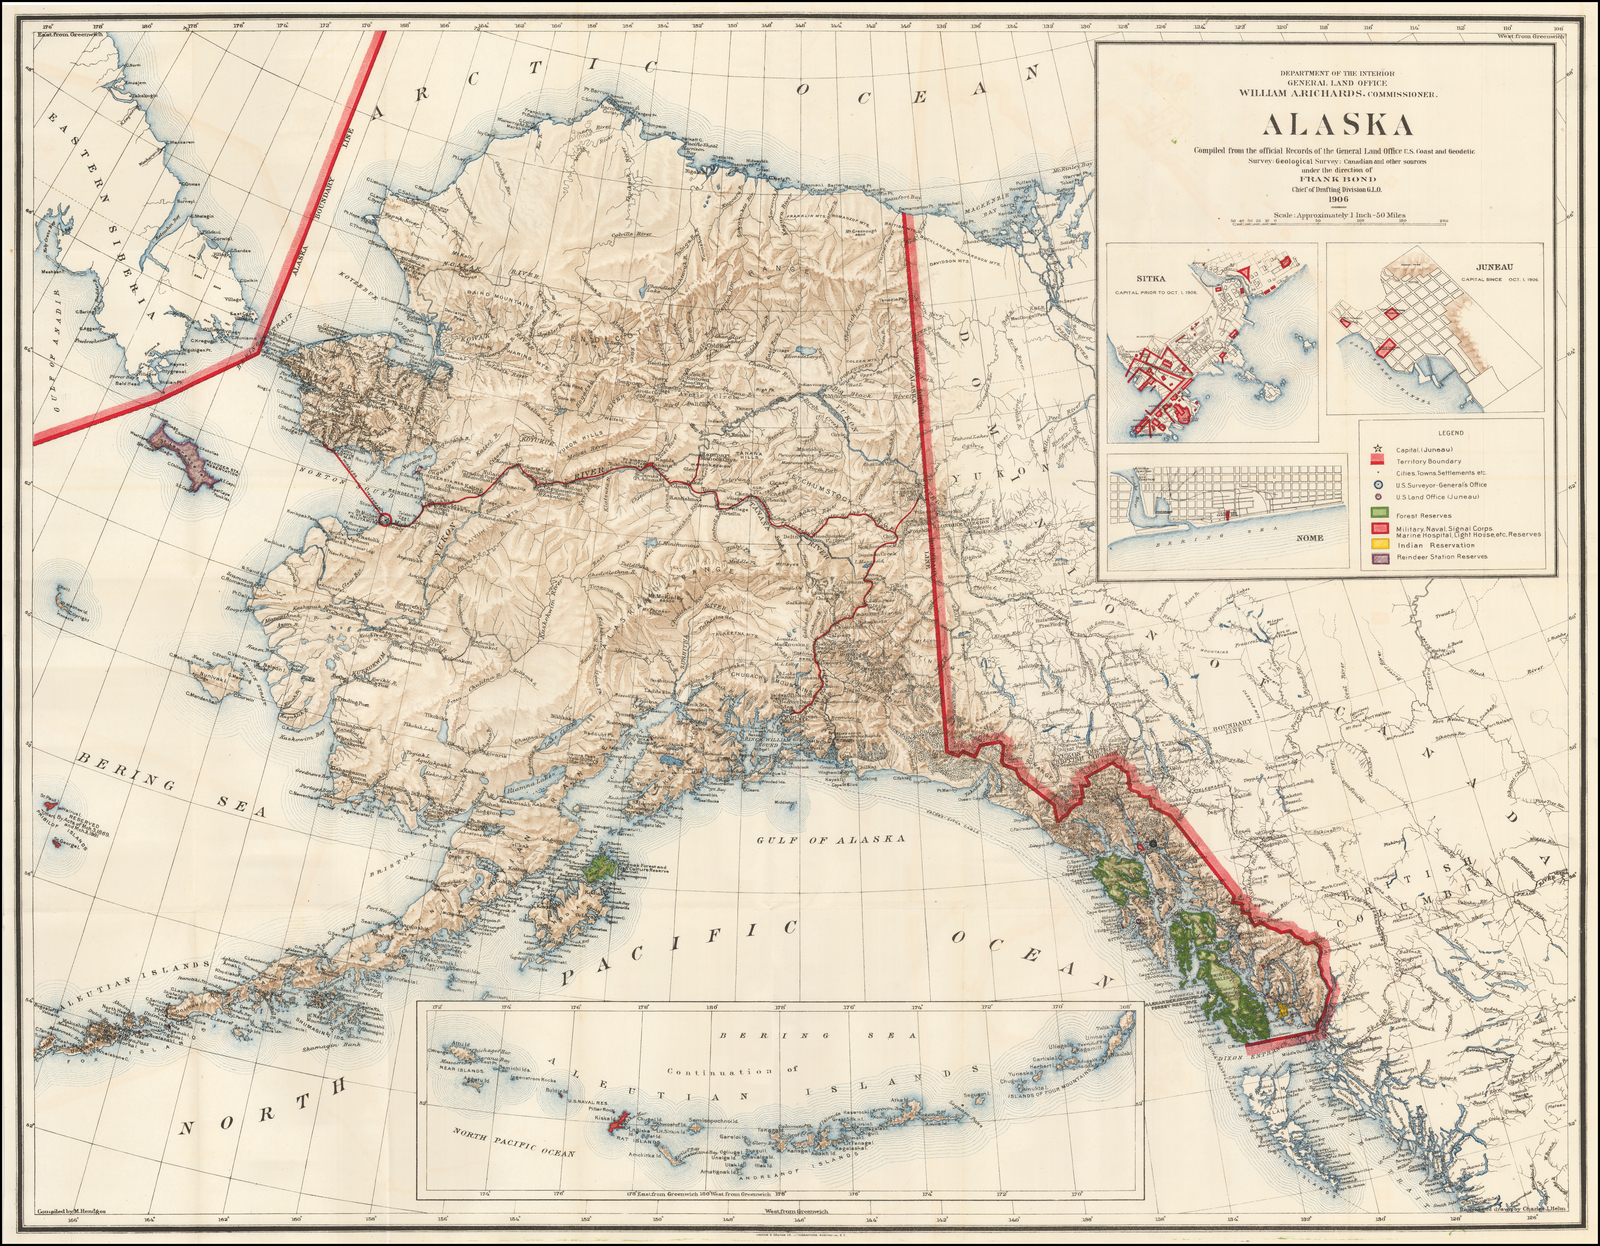 With City Plans of Juneau, Sitka and Nome) Alaska Compiled ... Map Of Alaska With Cities And Towns on map of alaska road system, map of ohio with cities and towns, map of deadhorse alaska, map of kenai peninsula alaska, map of wales with towns and cities, map of tennessee with cities and towns, map of germany with cities and towns, map of british columbia canada with cities, map of canada provinces, map of north america, map of alaska villages, map of alaska and washington state, map of palmer alaska, map of alaska coastline, map of maine with cities and towns, map of alaska inside passage, map of africa, map of homer alaska, map of united states with cities, map of alaska showing cities,